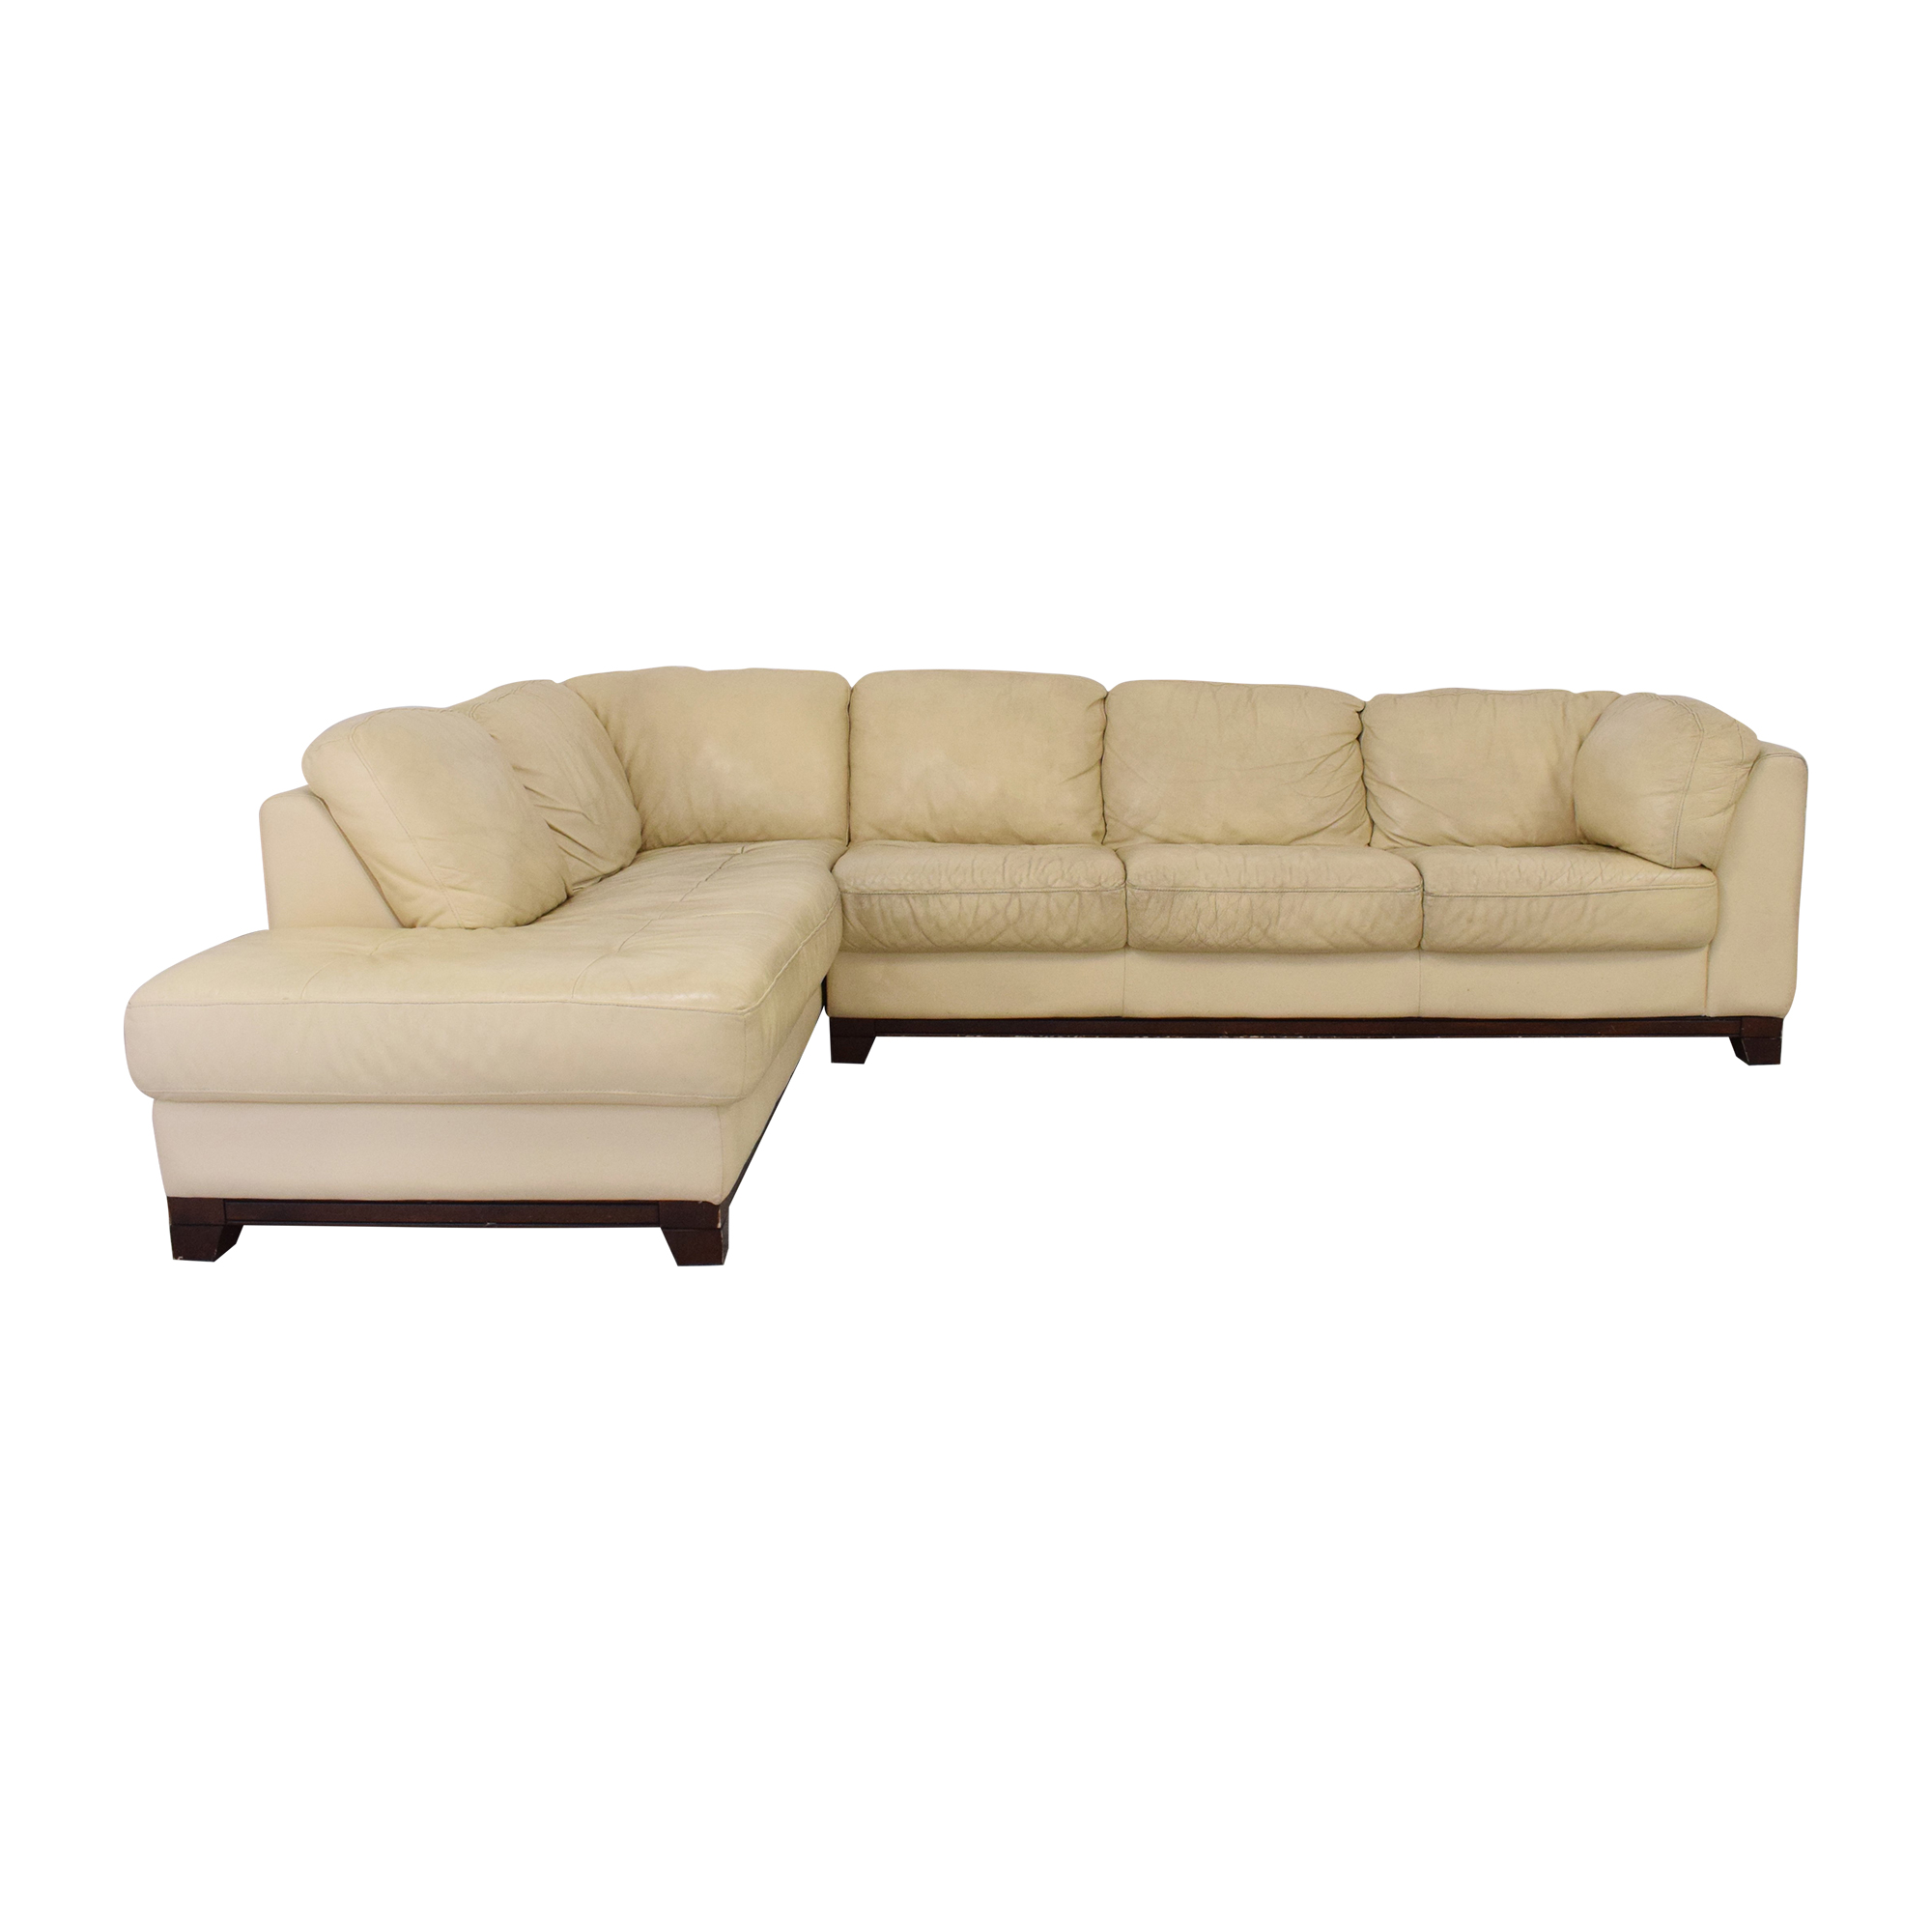 Superb Superb Sectional Sofa with Chaise second hand